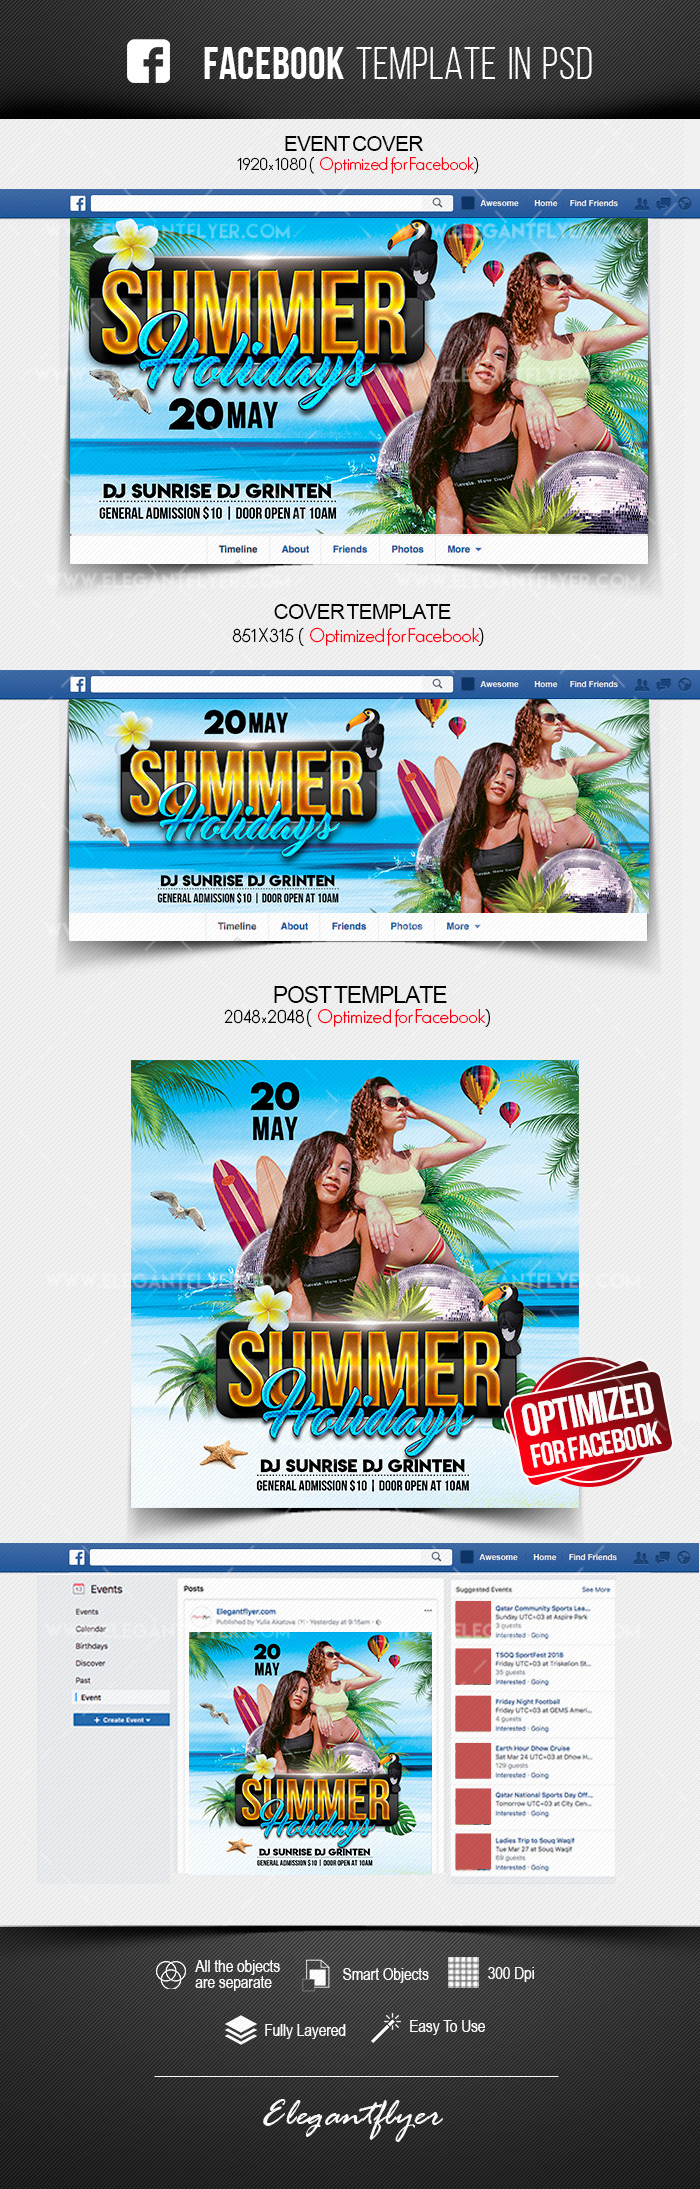 Summer Holidays – Free Facebook Cover Template in PSD + Post + Event cover